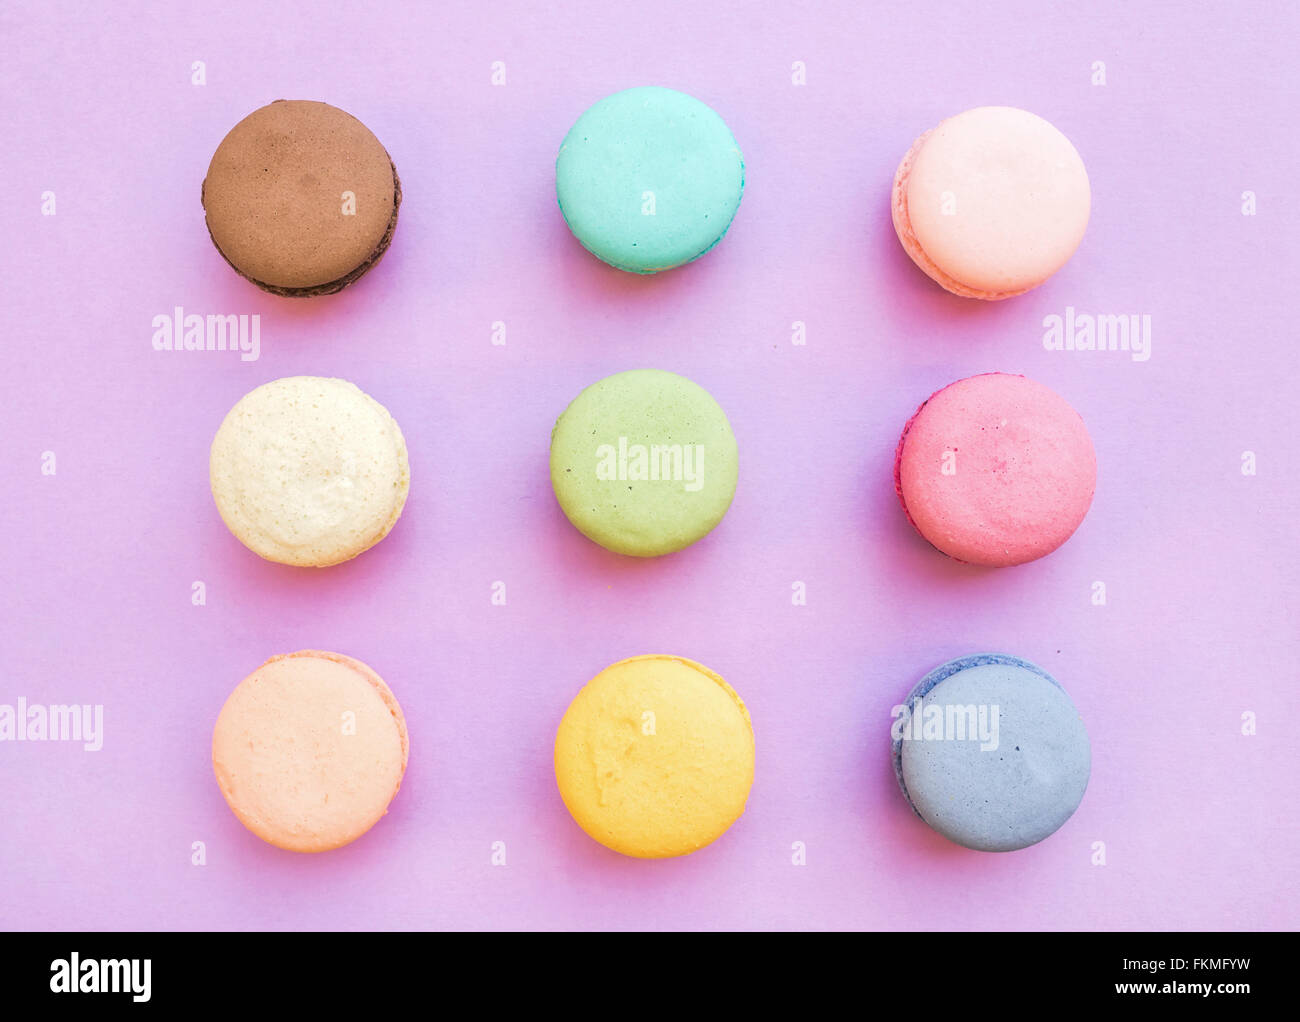 Sweet colorful French macaron biscuits on pastel pink background, top view - Stock Image